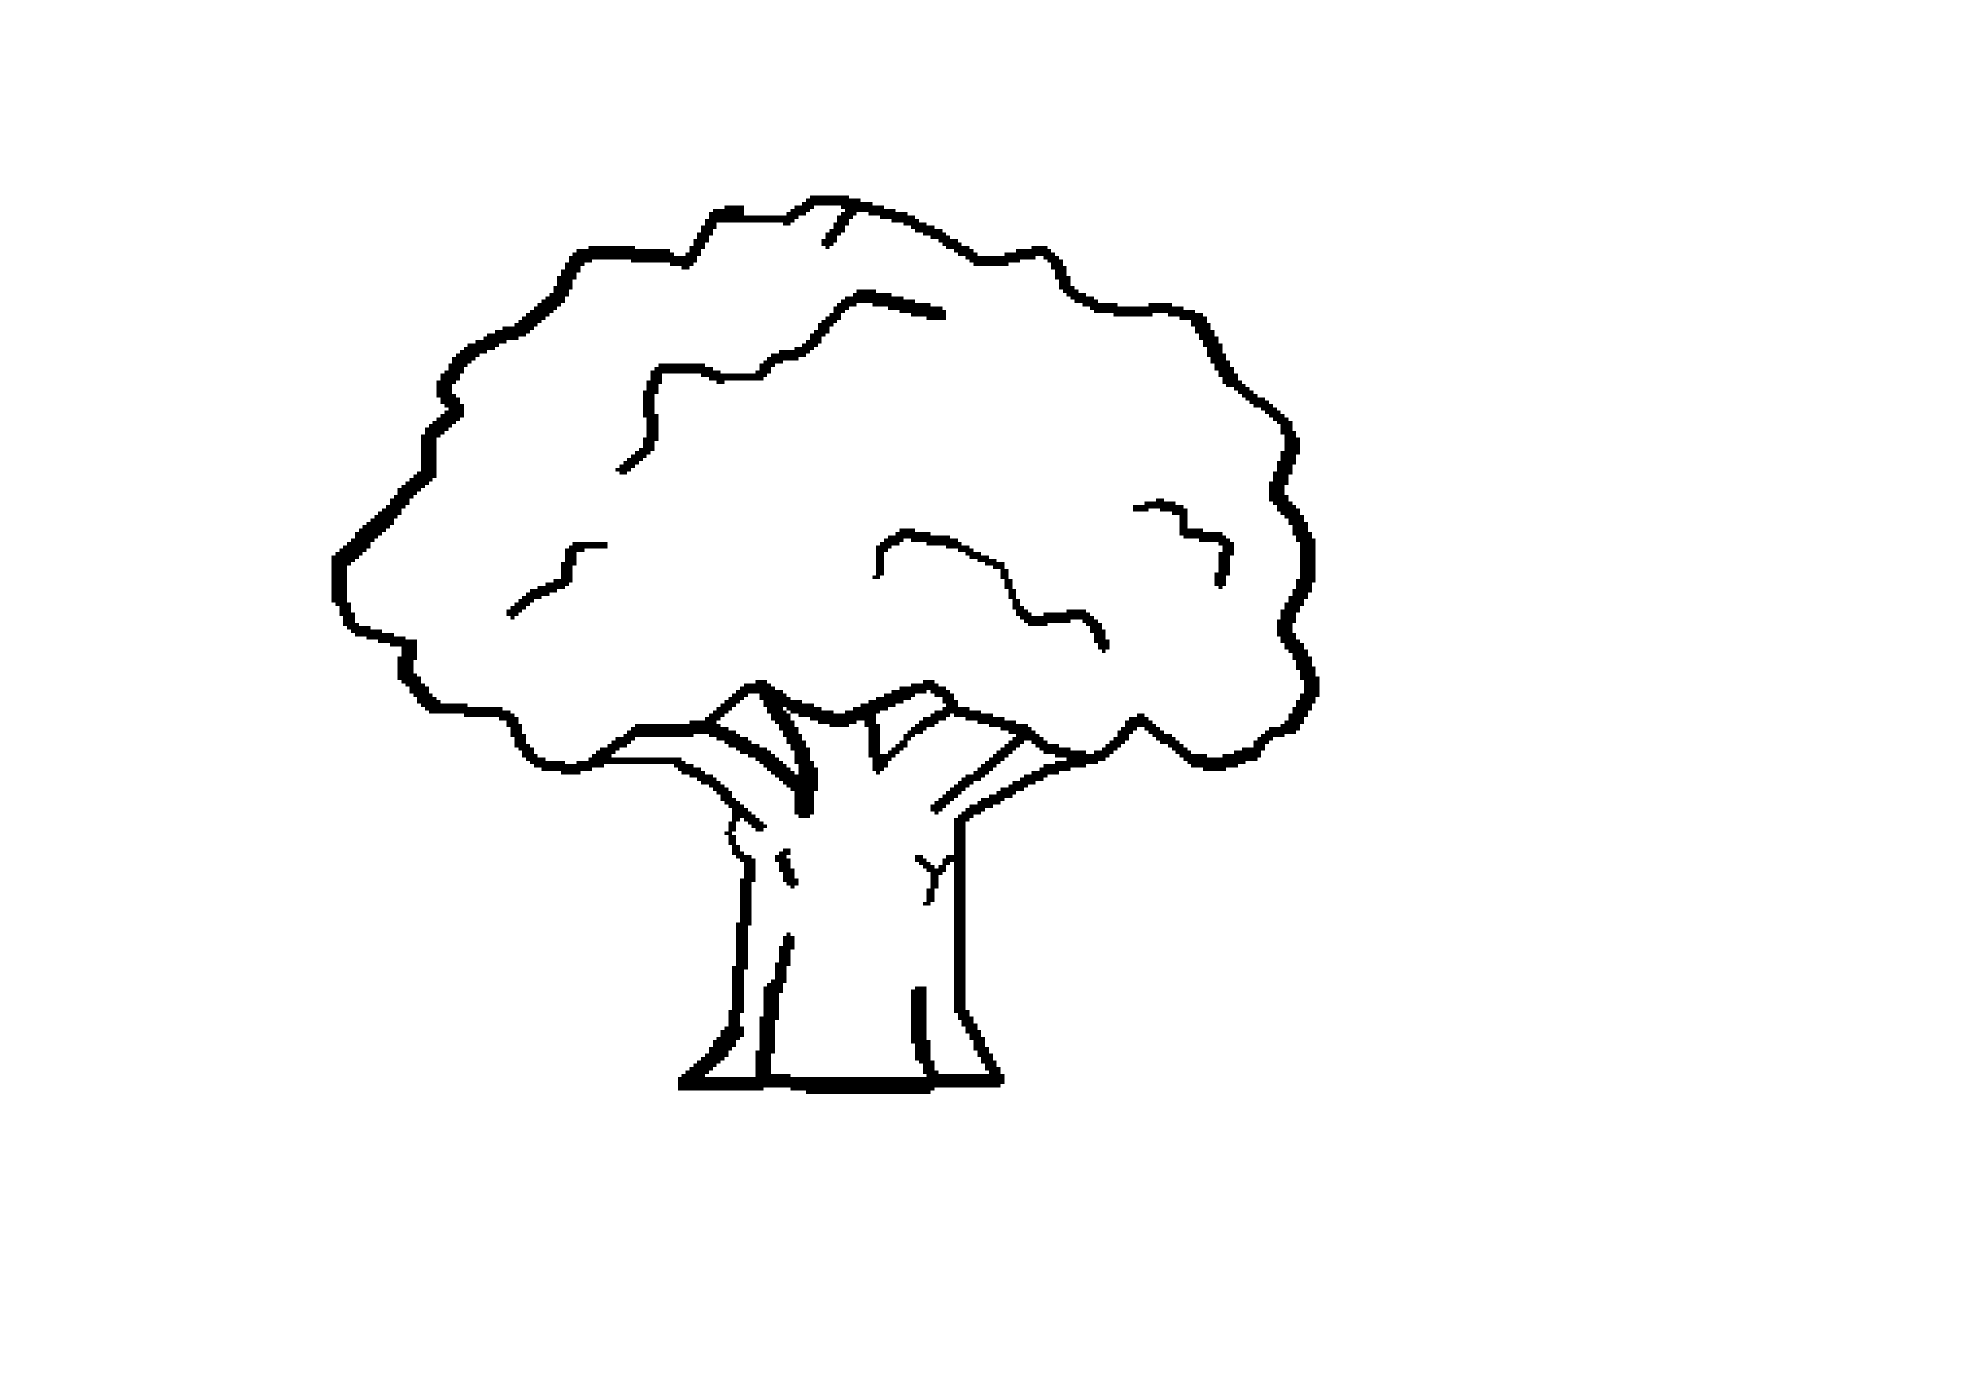 Tree Clipart Black And White Clipart Bes-Tree Clipart Black And White Clipart Best-14